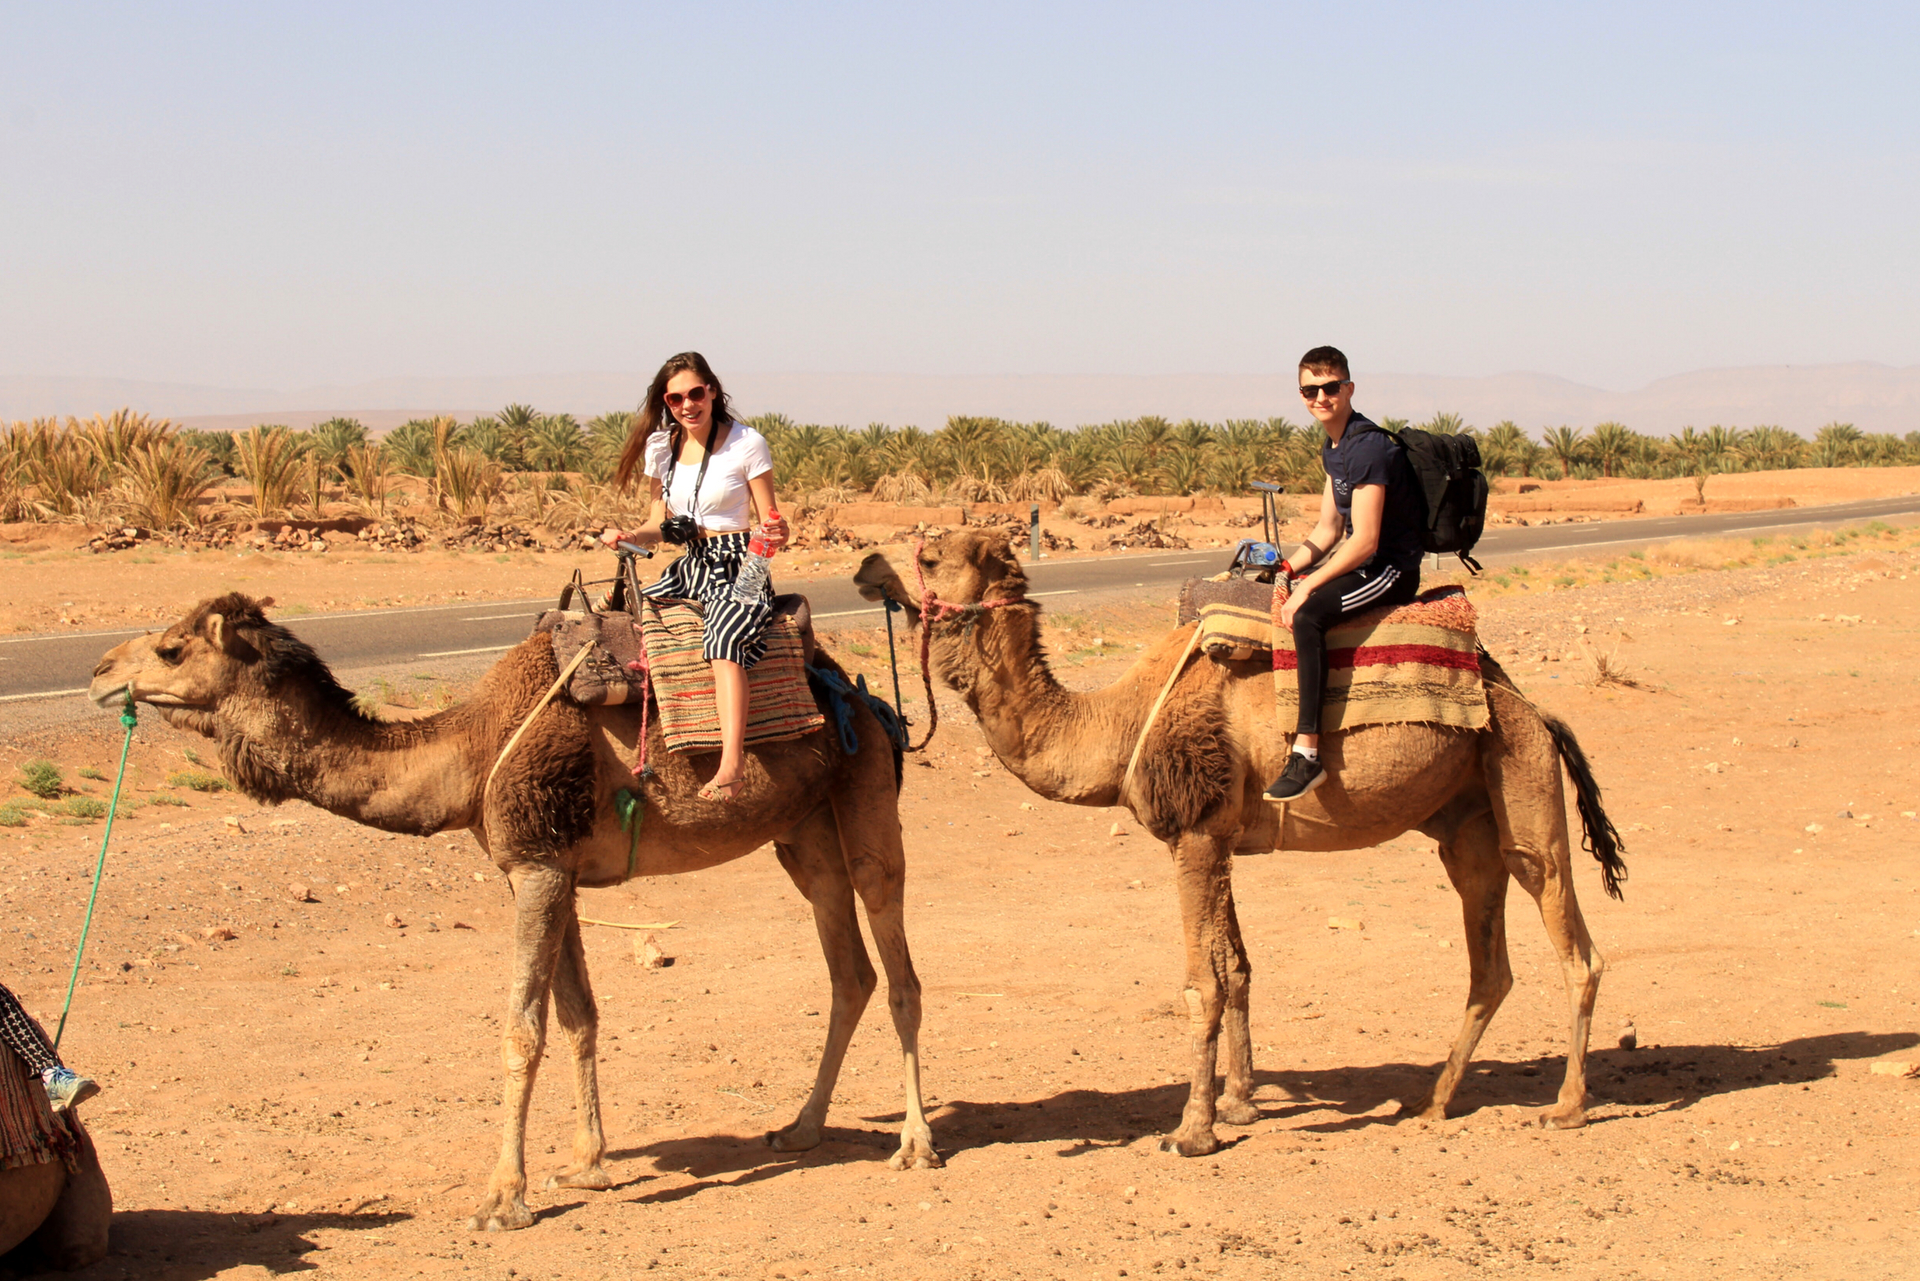 Riding Camels in the Sahara Desert